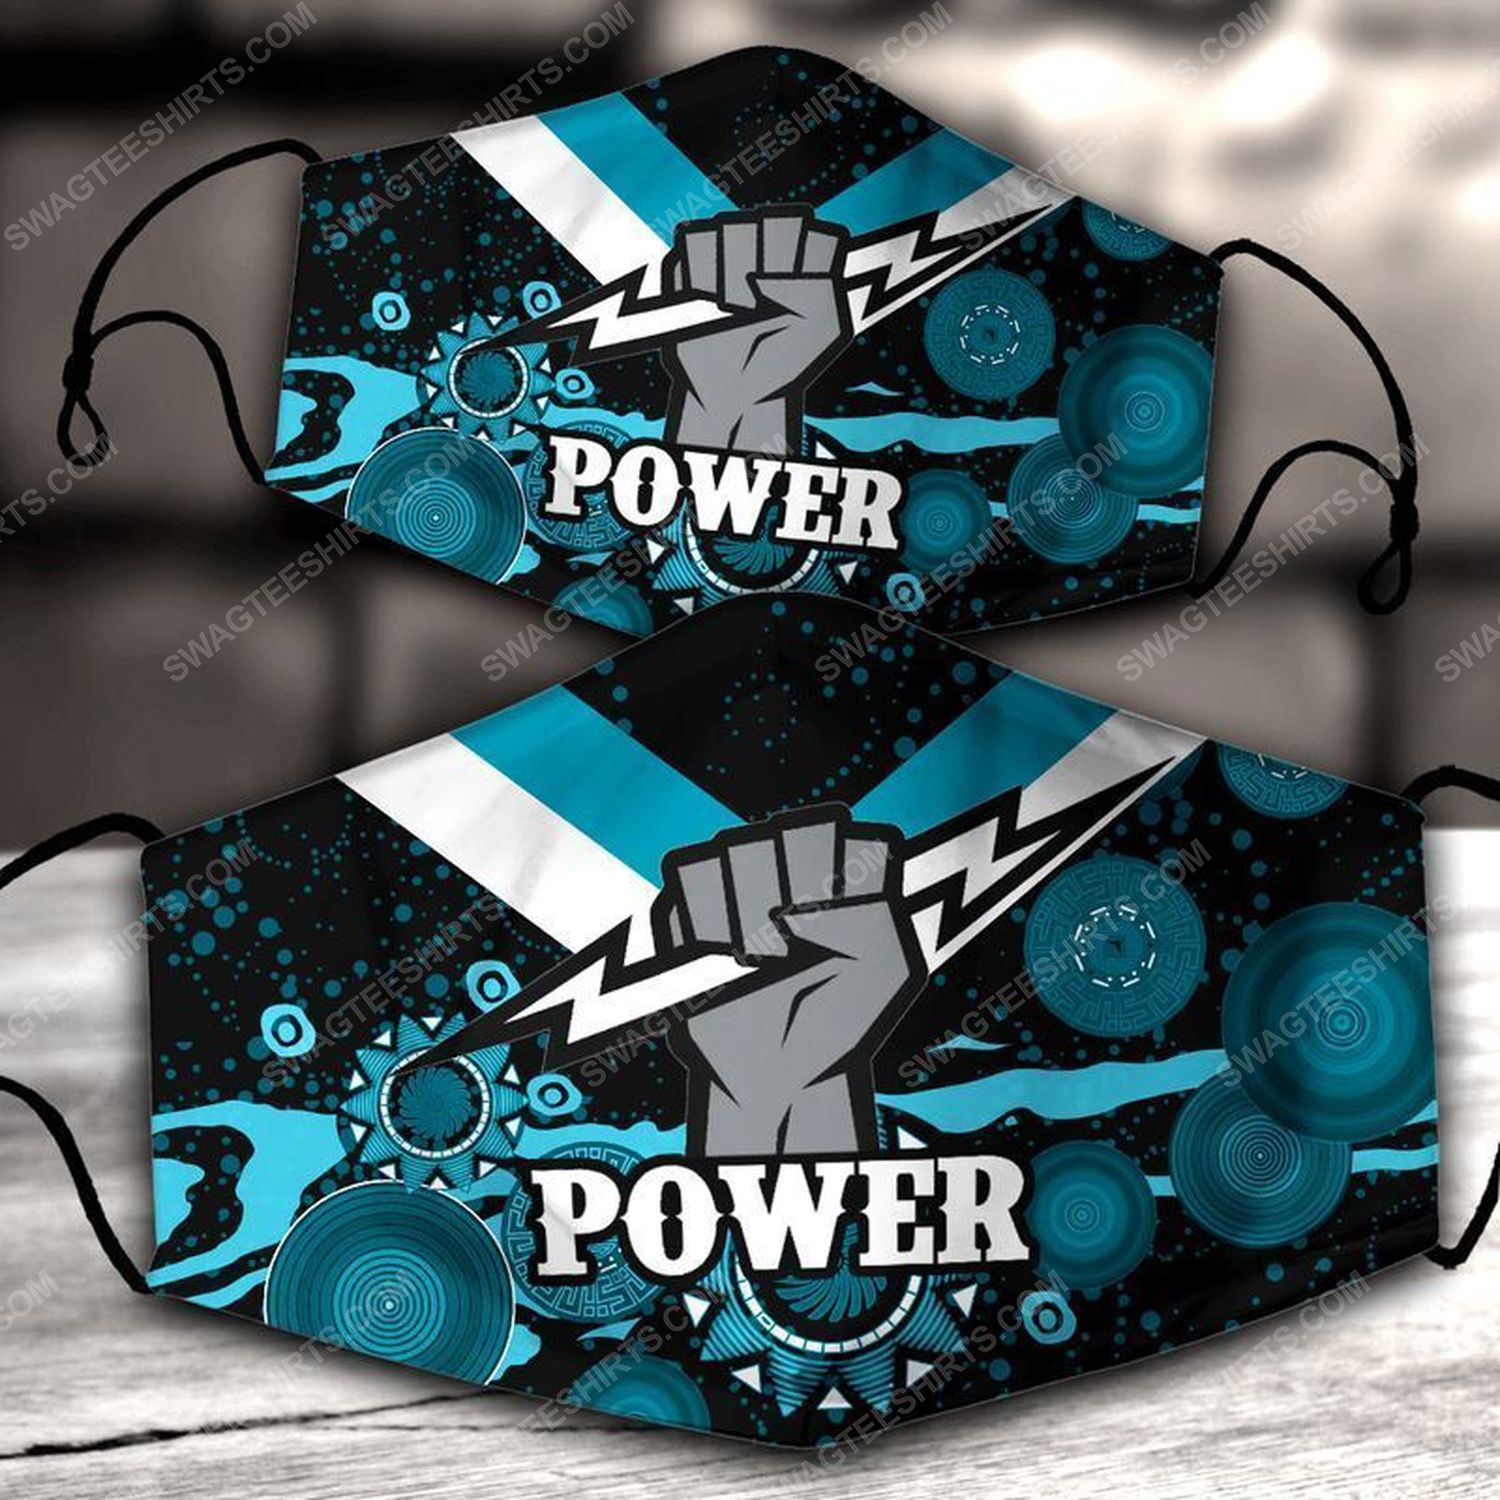 Football club port adelaide power all over print face mask